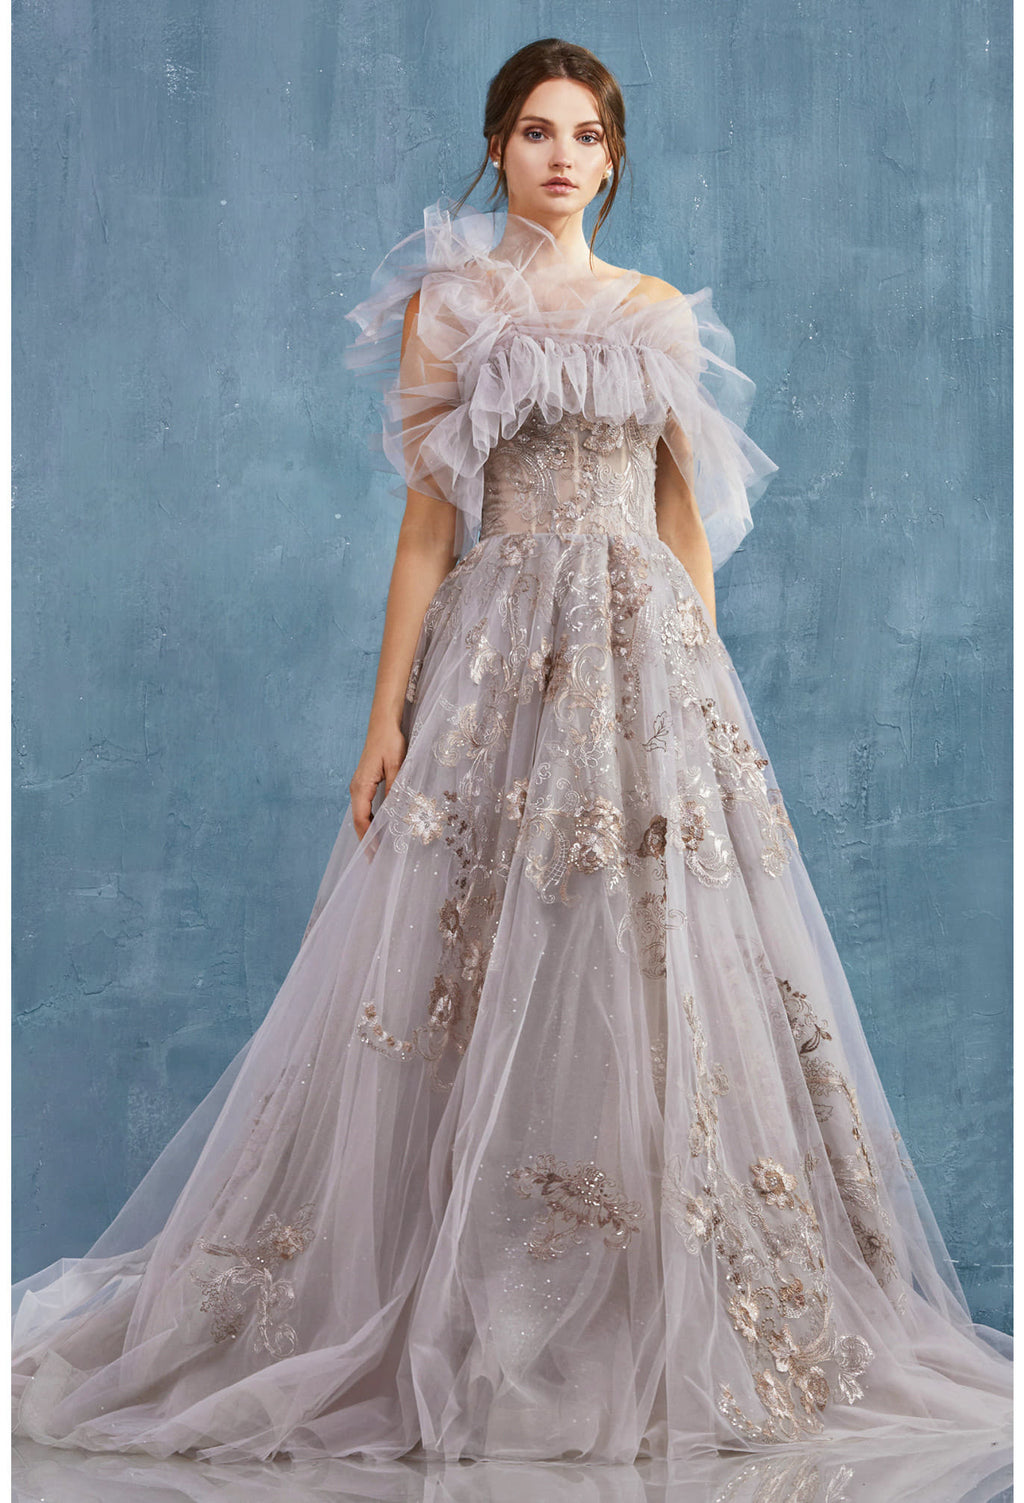 PENELOPE GOWN EMBROIDERED LACE BALL GOWN WITH DETACHABLE RUFFLE SHAWL. BACK ZIPPER CLOSURE.